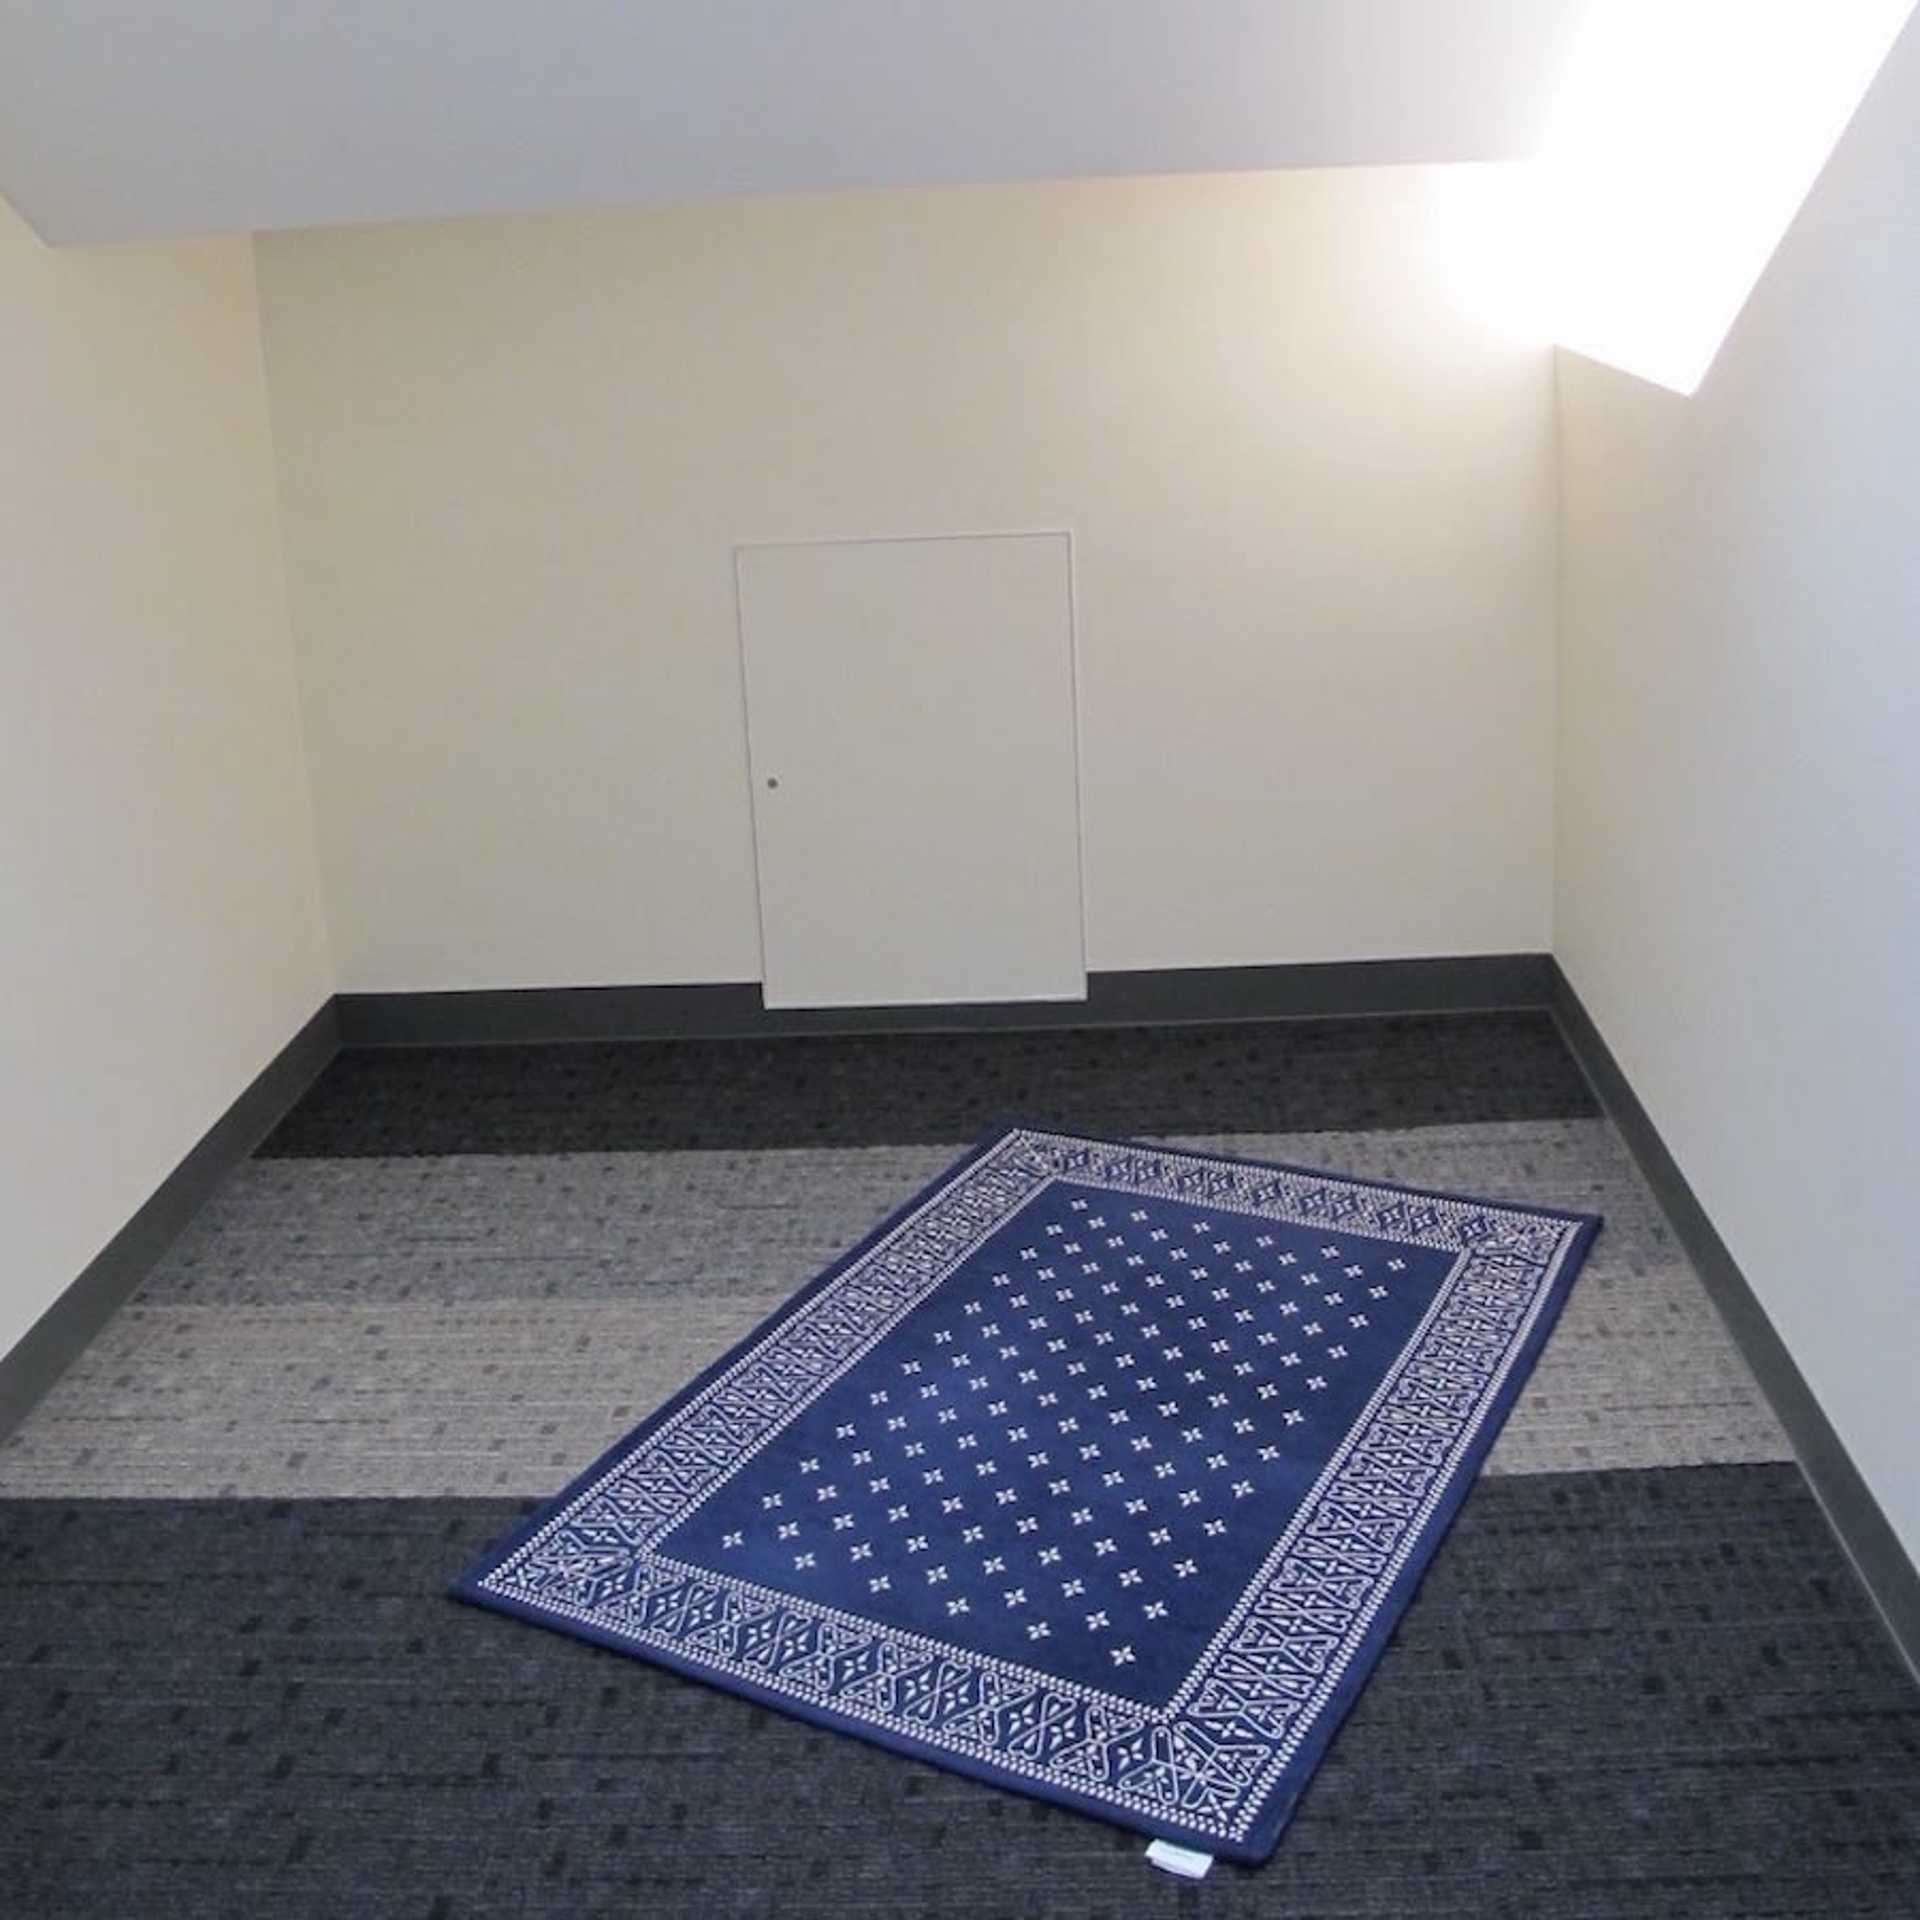 There are two separate rooms for men and women respectively. Each room measures about 30m2